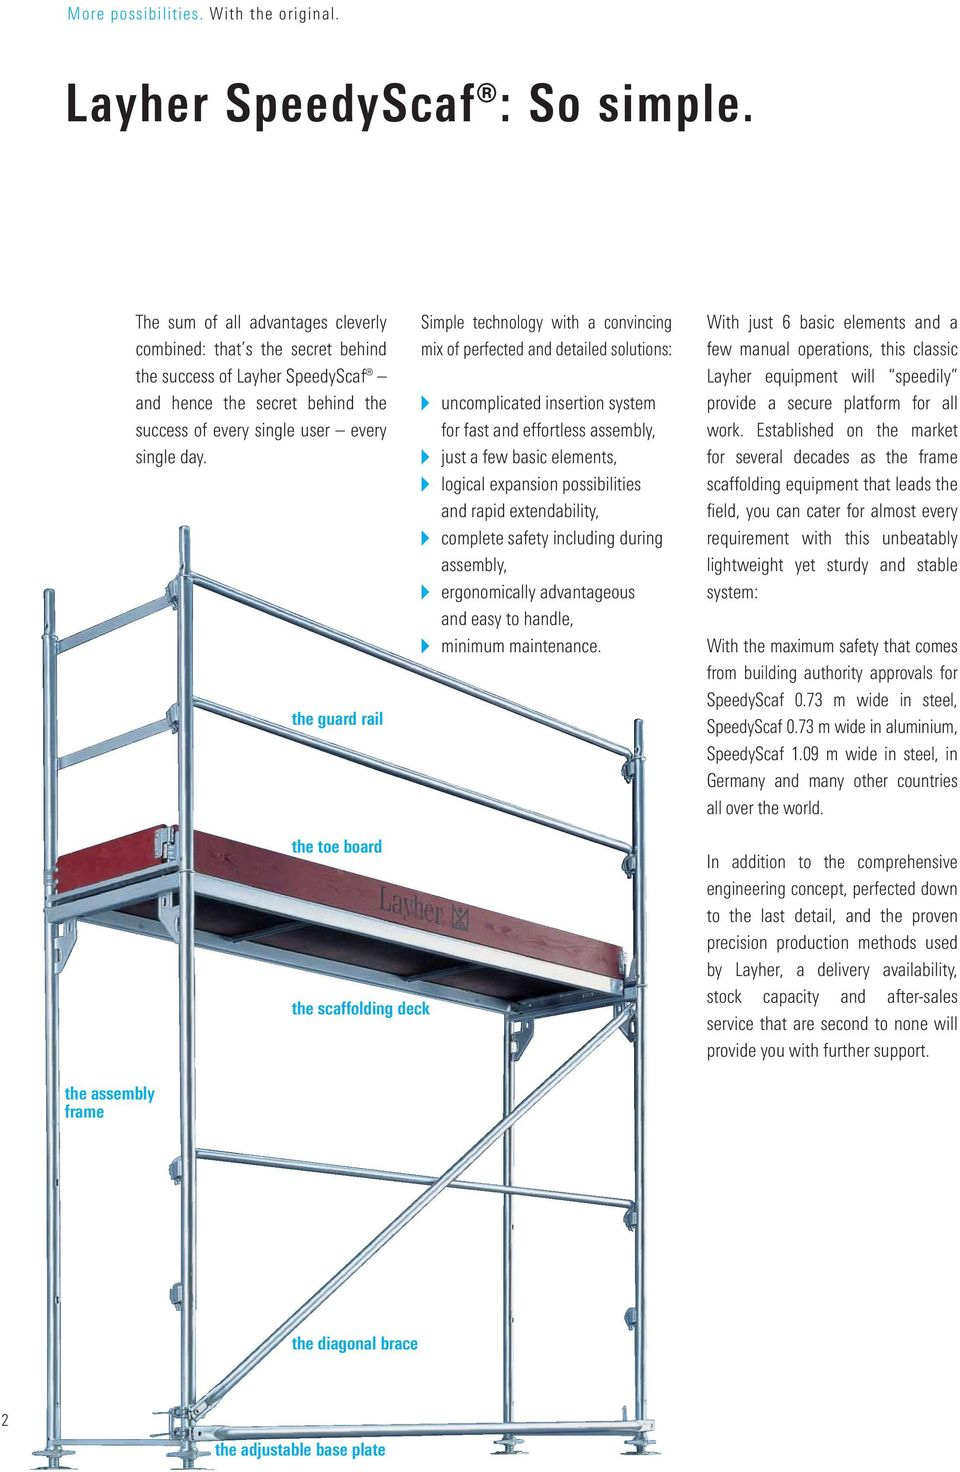 the guard rail Simple technology with a convincing mix of perfected and detailed solutions: uncomplicated insertion system for fast and effortless assembly, just a few basic elements, logical